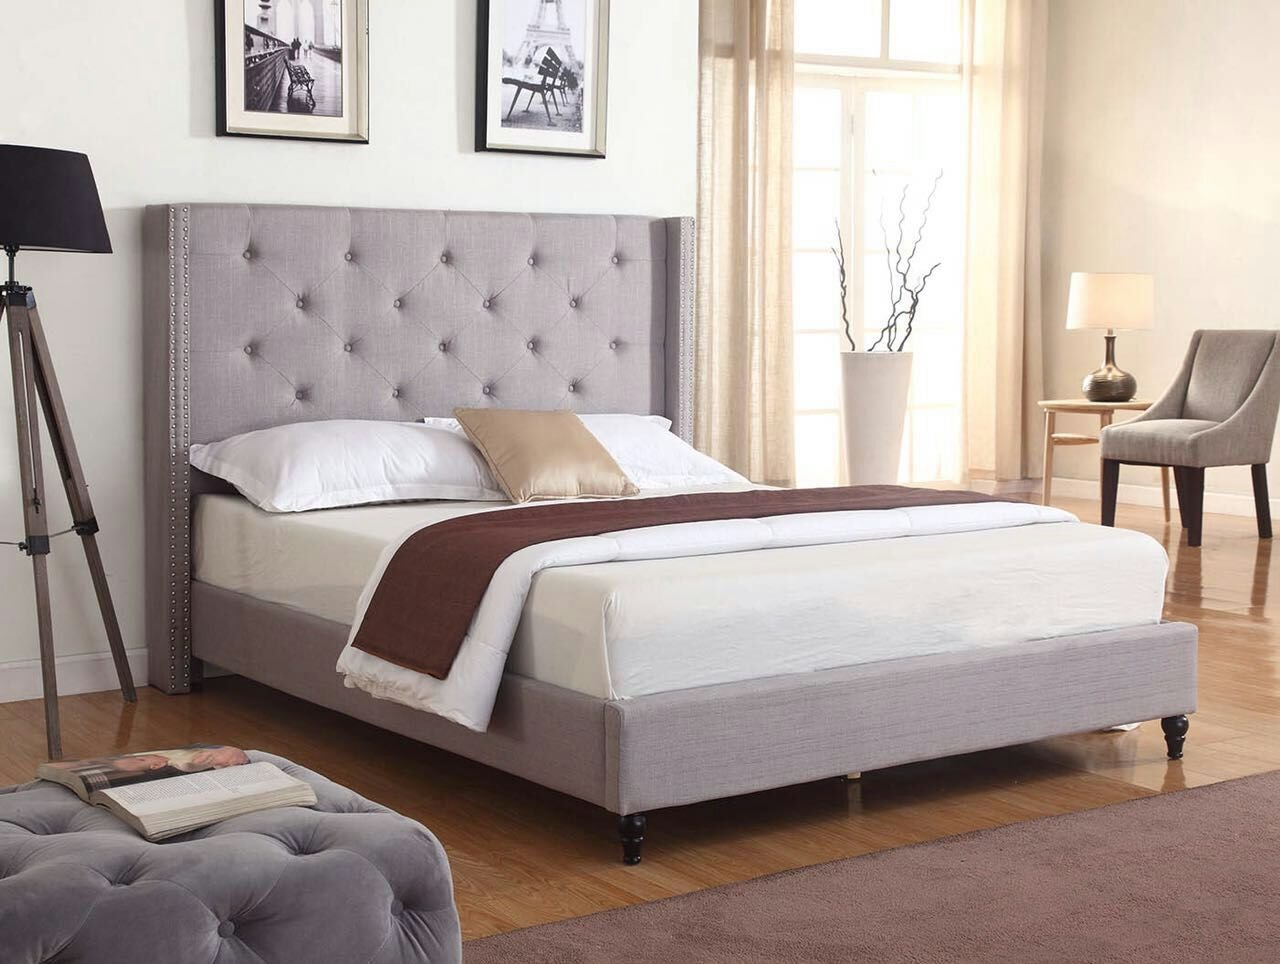 Home Life Premiere Classics Cloth Light Grey Silver Linen 51'' Tall Headboard Platform Bed with Slats Full - Complete Bed 5 Year Warranty Included 007